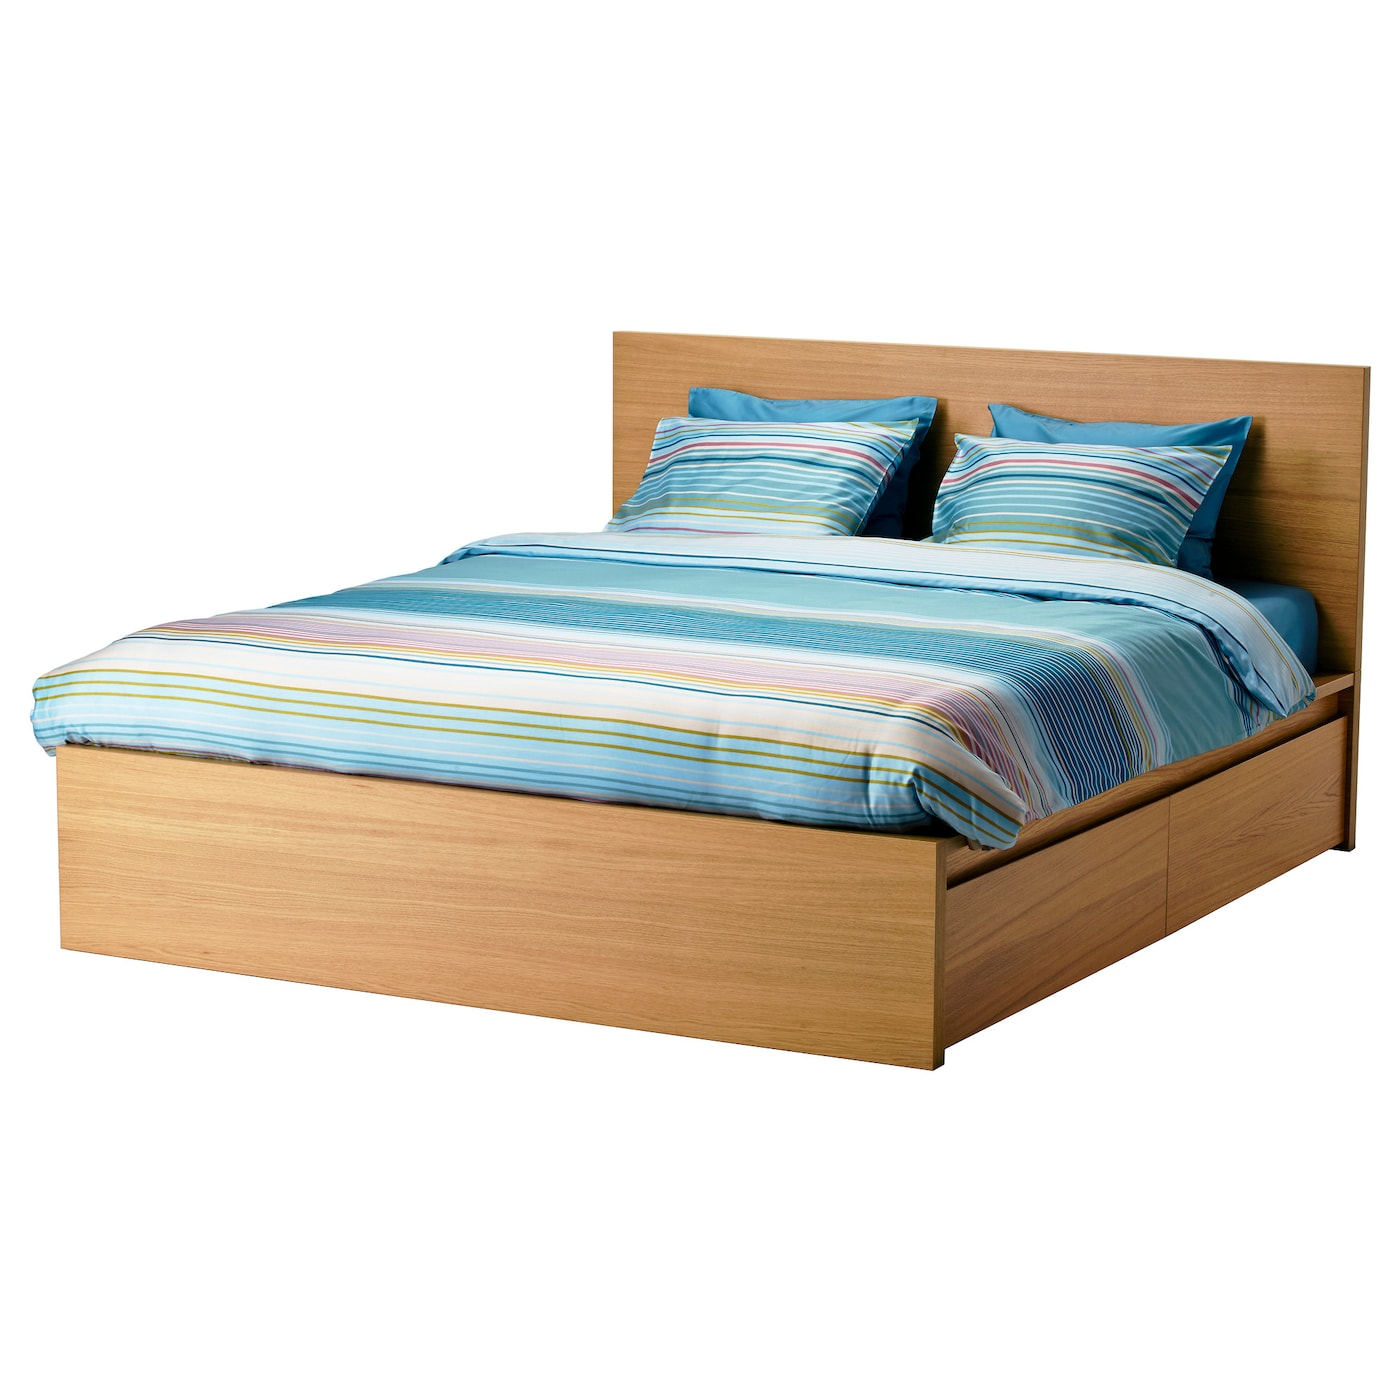 Beds & Bed Frames IKEA